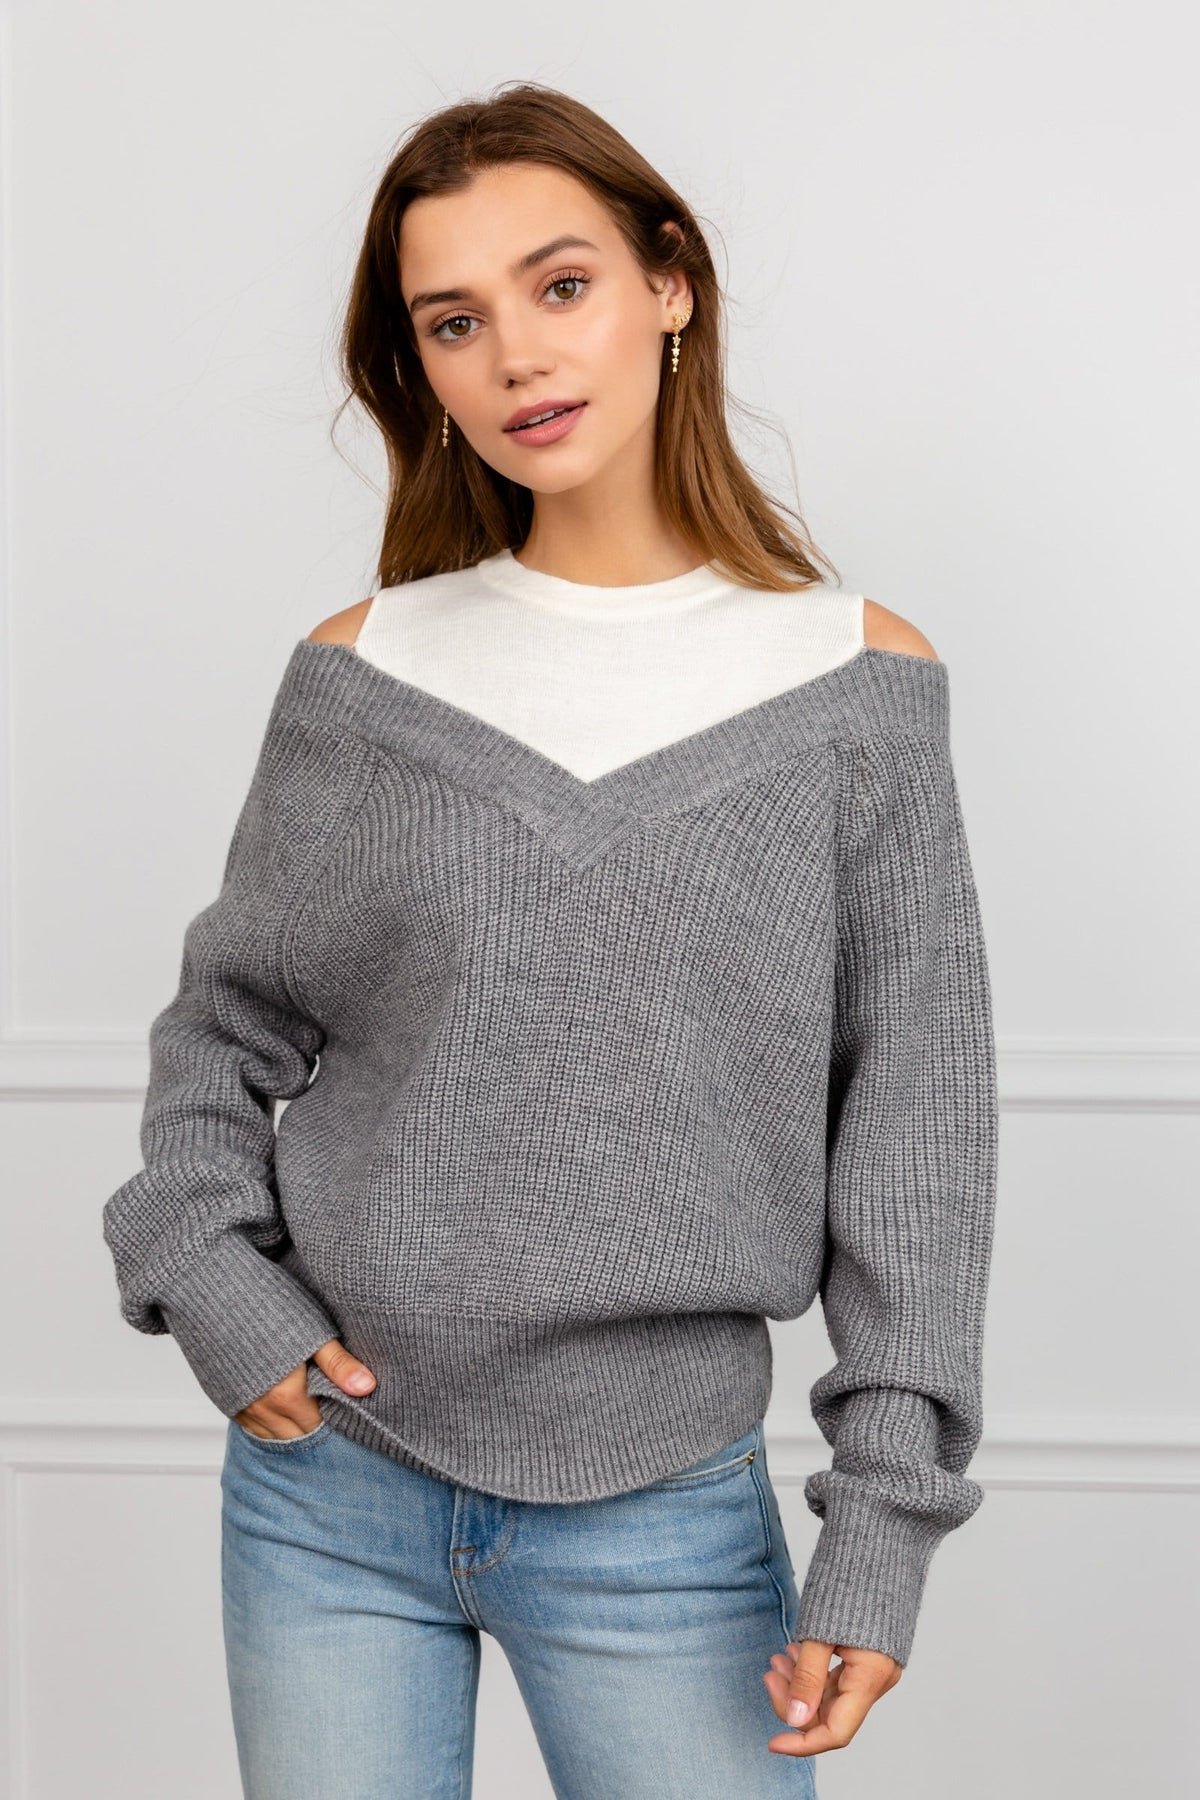 Fusion Sweater with Layered Look & Cold Shoulders in Grey | J.ING Women's Knitwear